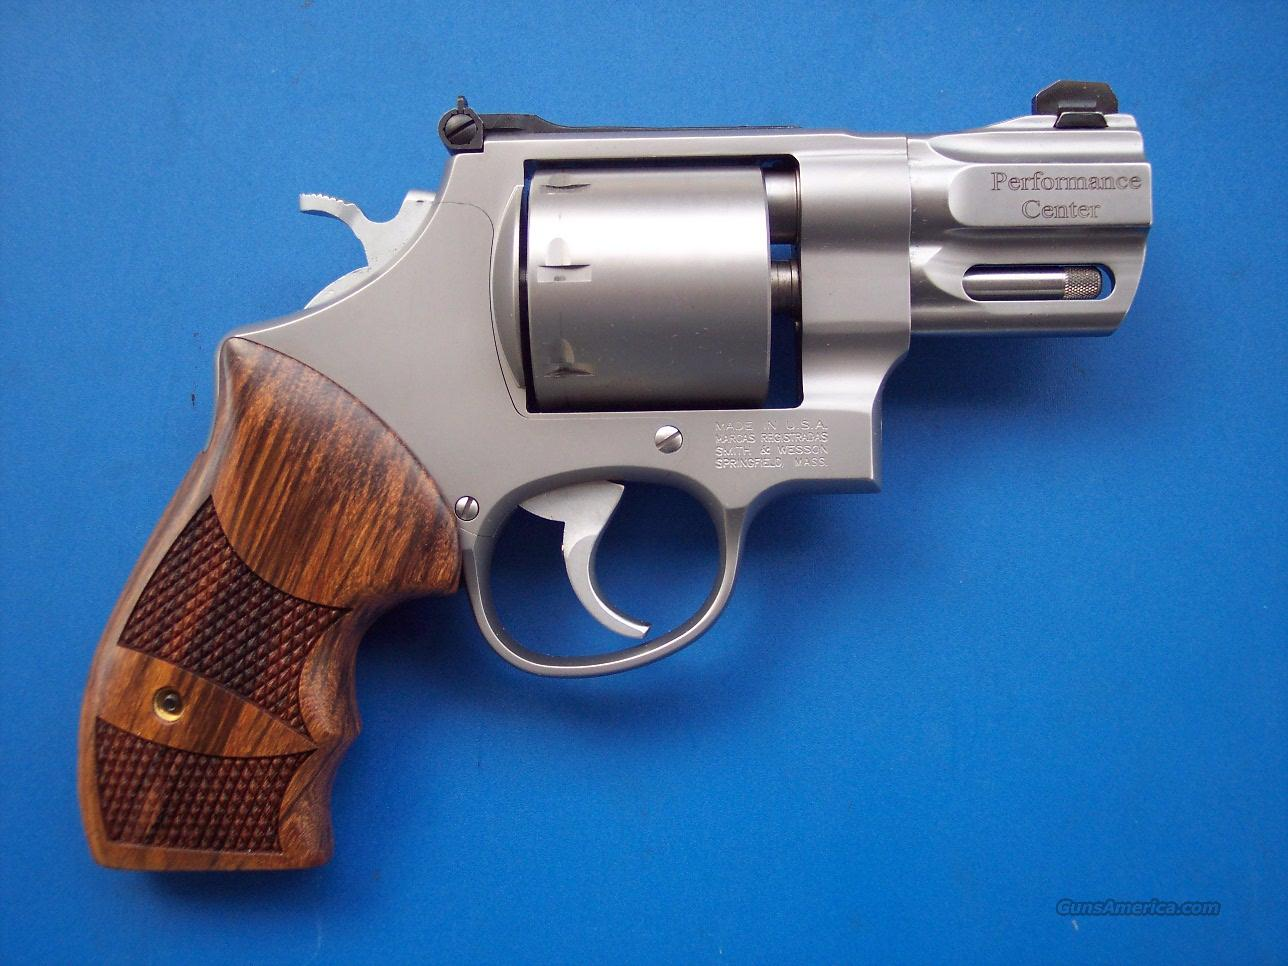 "Smith & Wesson 627 Performance Center 8 Shot .357 Mag 2 5/8"" *NEW* 170133  Guns > Pistols > Smith & Wesson Revolvers > Performance Center"